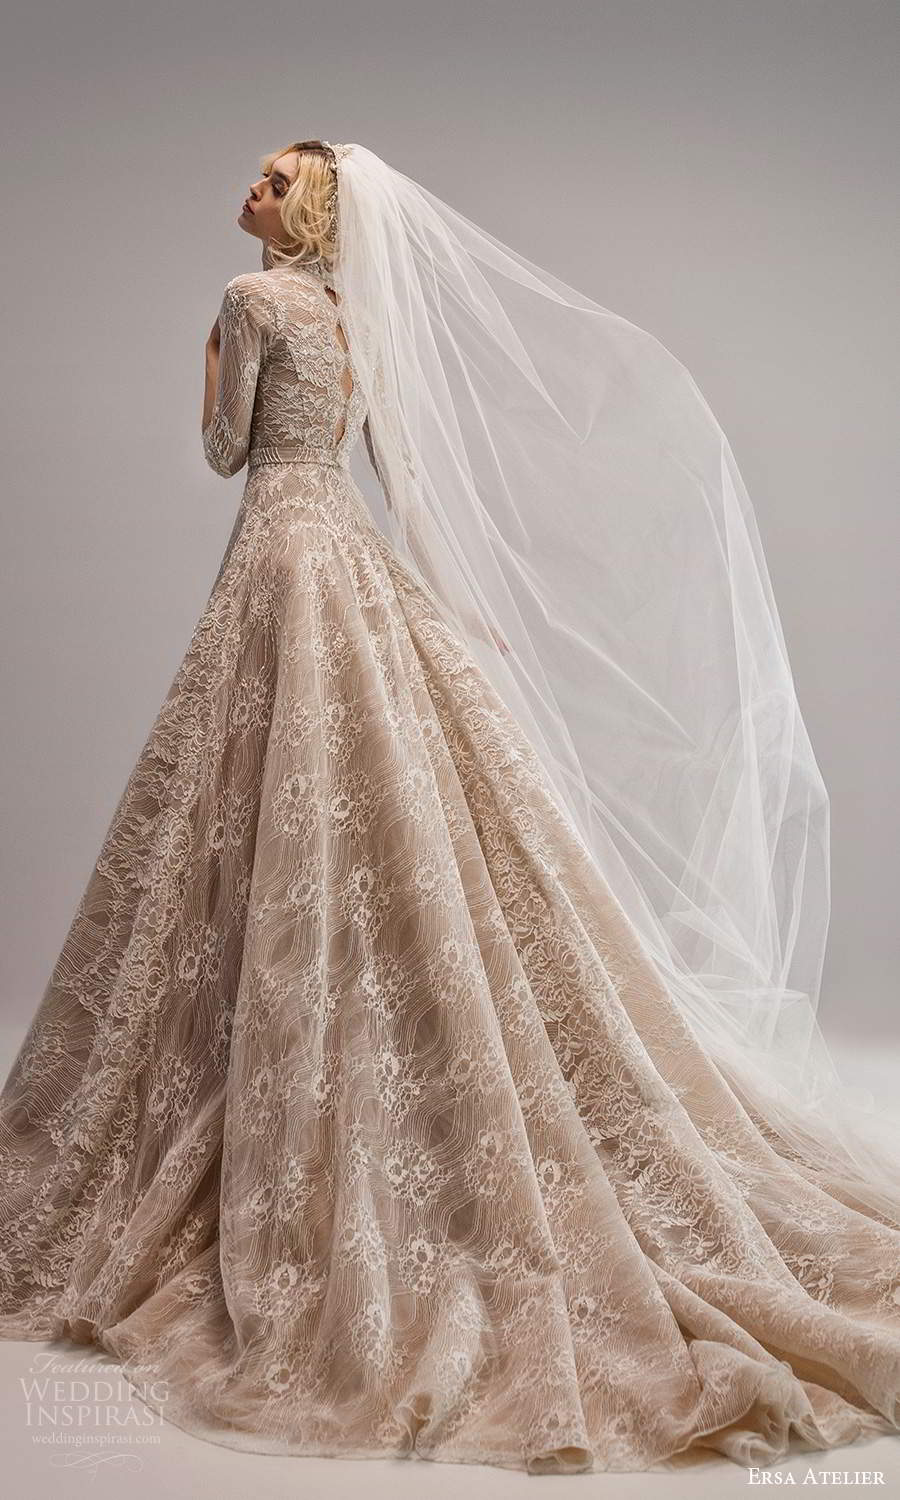 ersa atelier spring 2021 bridal 3 quarter sleeves plunging v neckline fully embellished lace a line ball gown wedding dress chapel train (14) bv